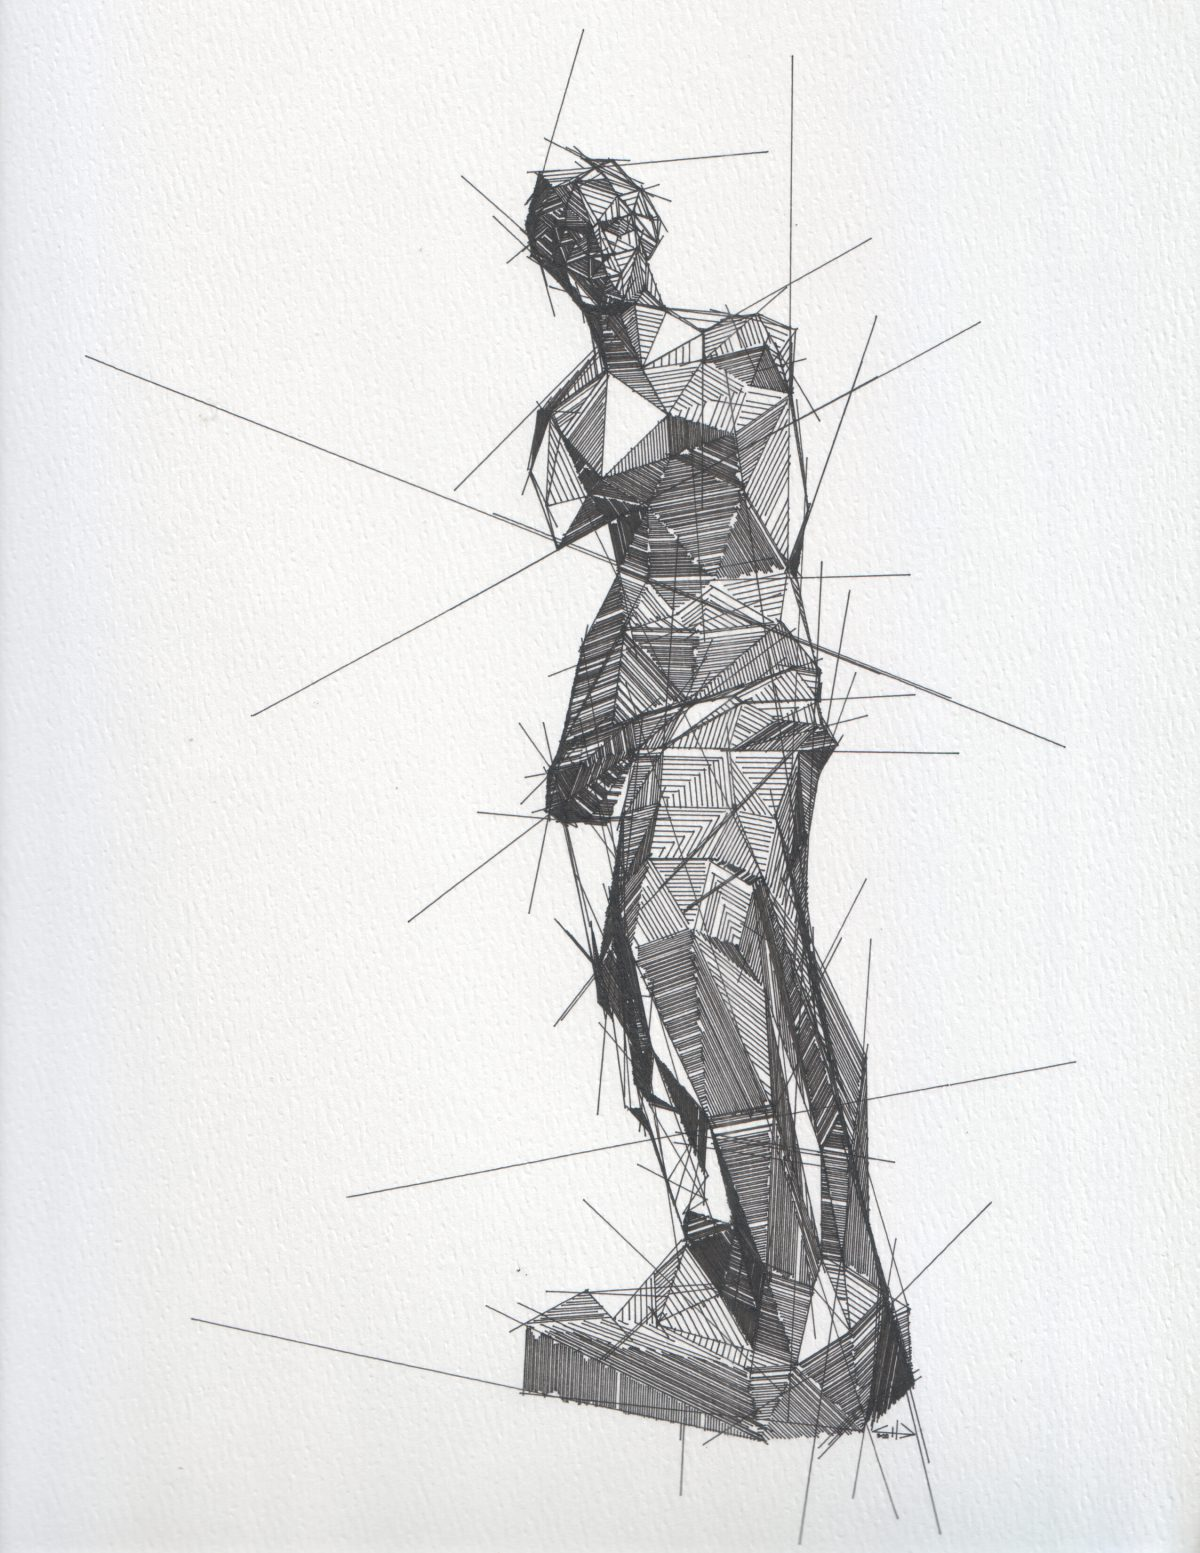 Venus de Milo - 23x30cm - Plotter drawing